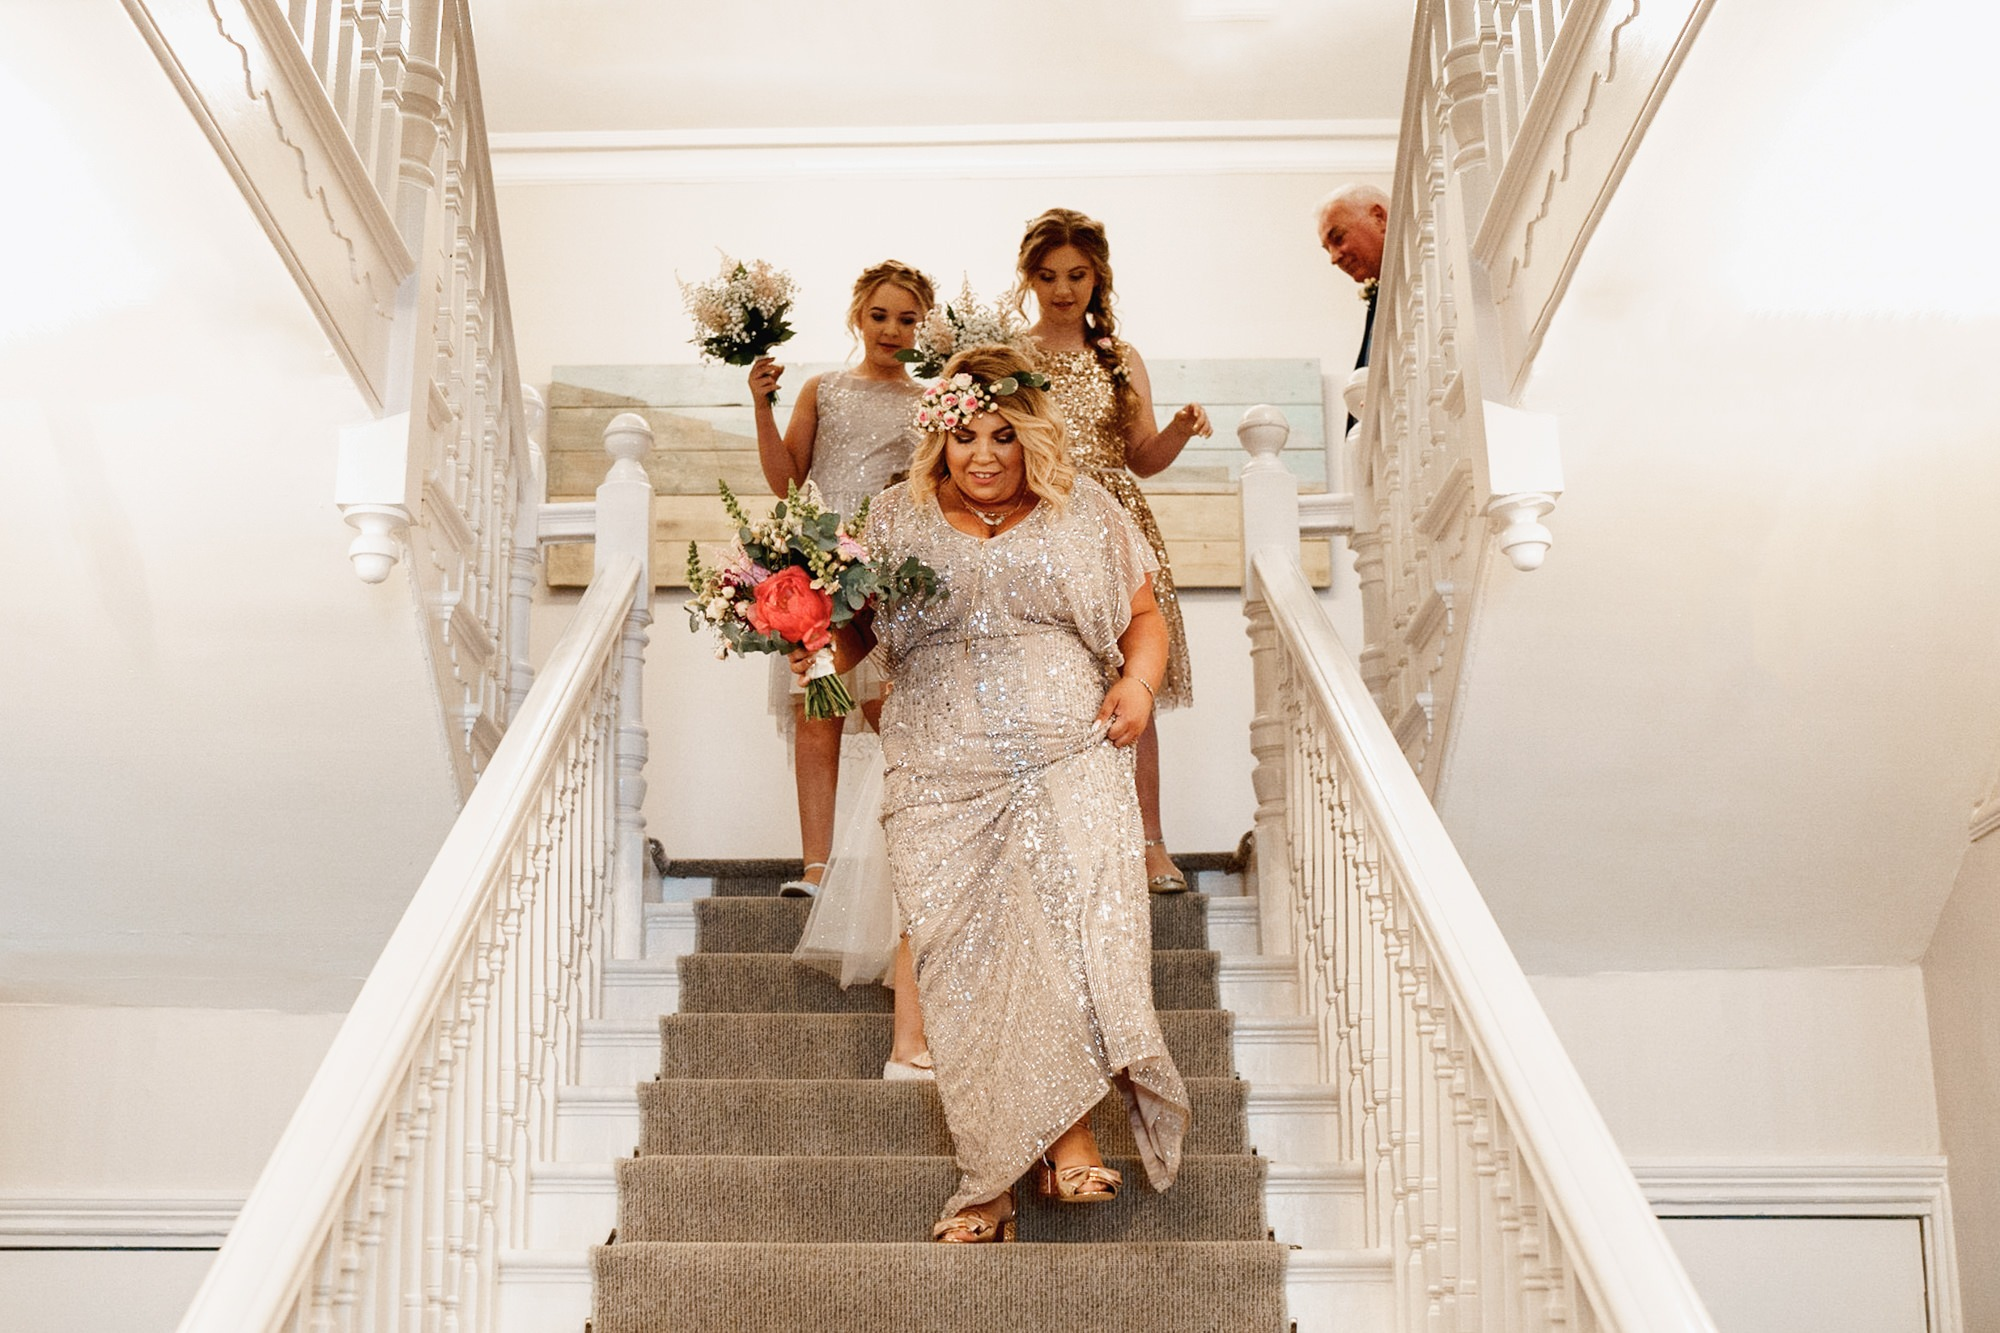 bride ad bridal party walk downstairs at watergate bay hotel wedding